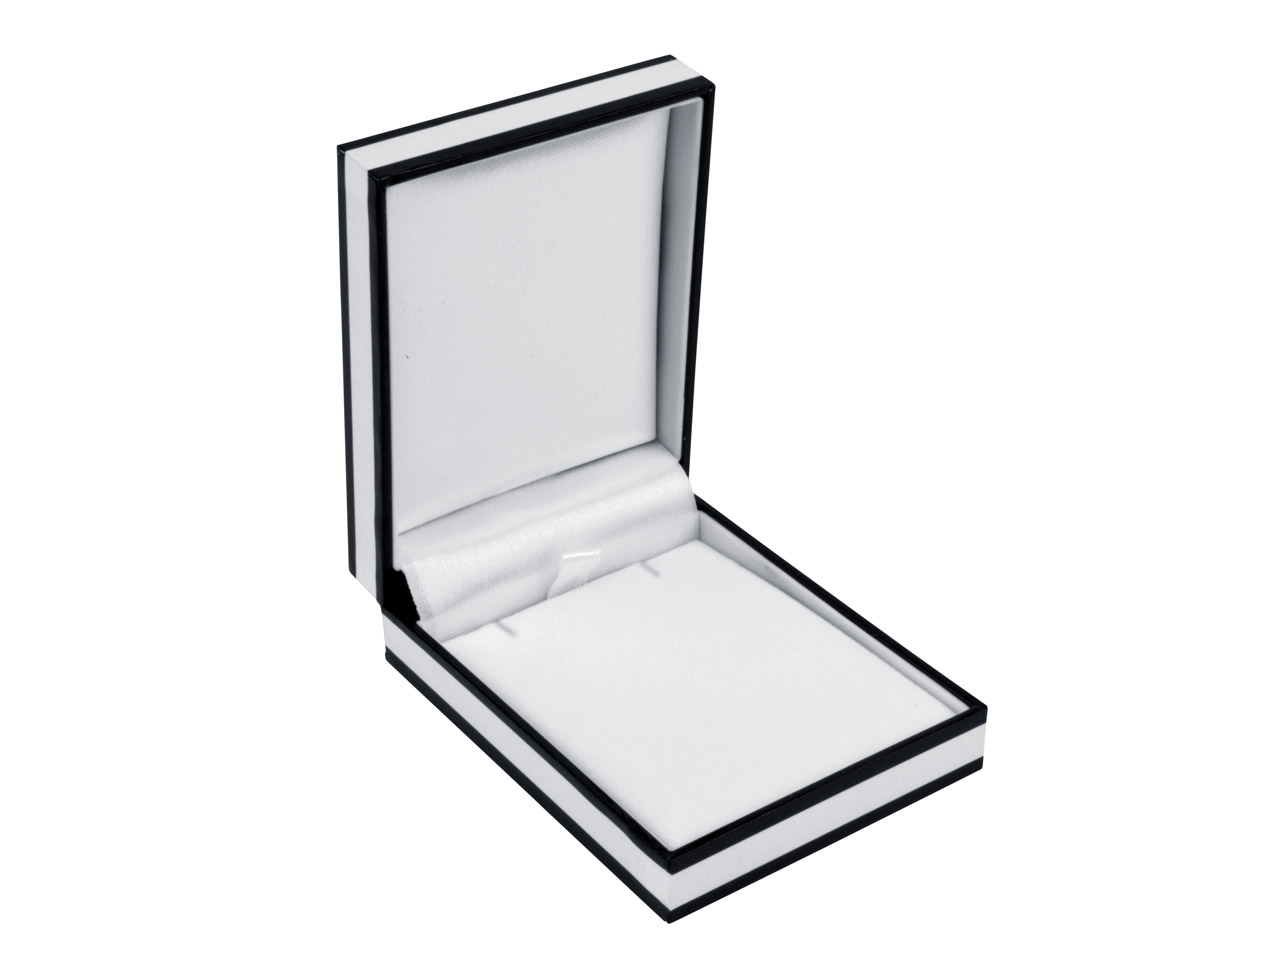 White Monochrome Pendant Box